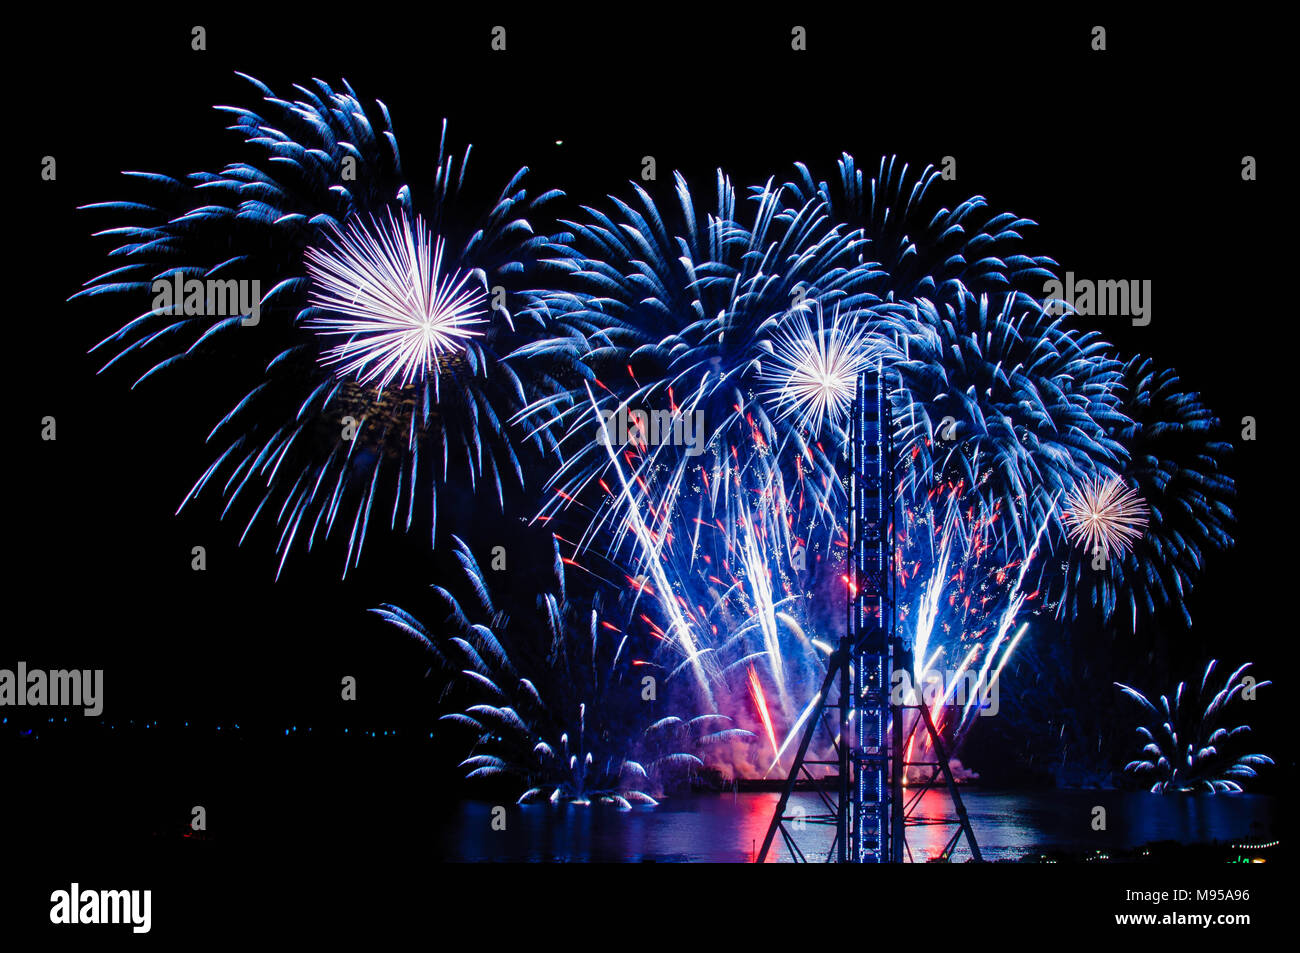 Italy entry from Pyrolympics in Pasay Philippines - Stock Image